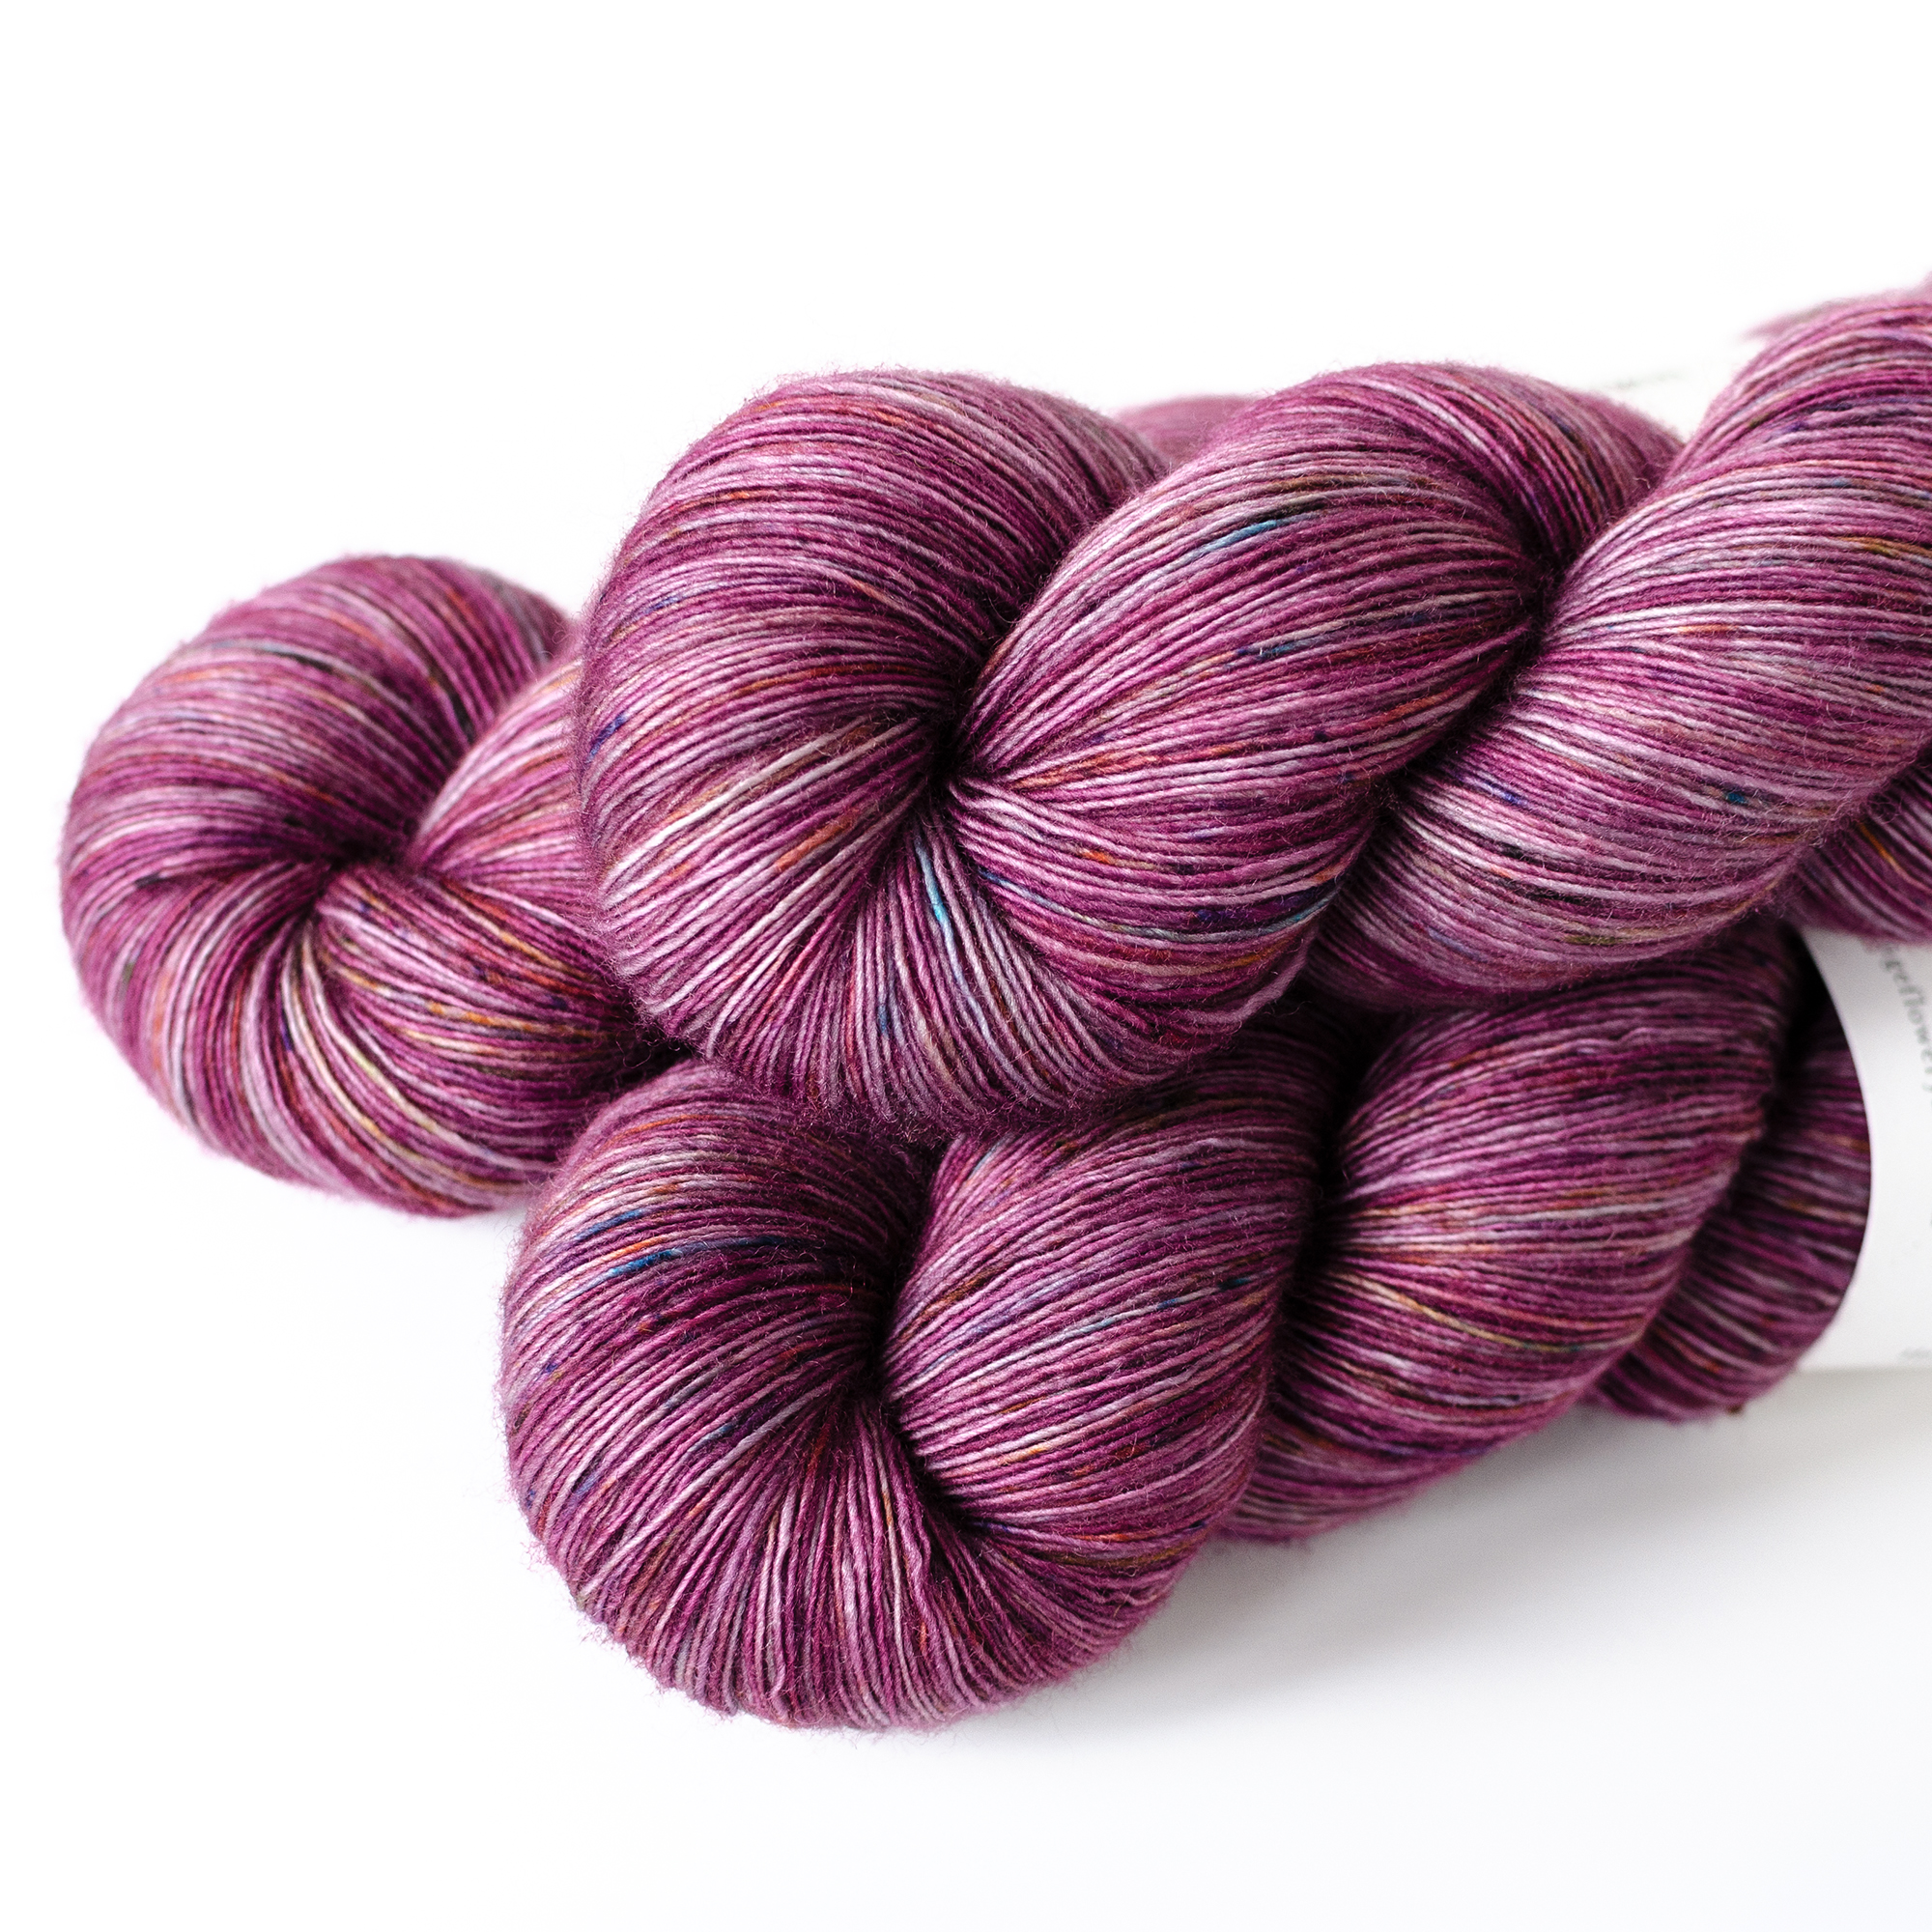 Lace - $25  100% Superwash Merino Wool  unplied  870 yards / 796 meters  100 grams  Heavy Lace Weight  US 1-5 / 2.25-3.75mm  Hand wash / Dry flat  This is an extra soft and light single ply yarn.